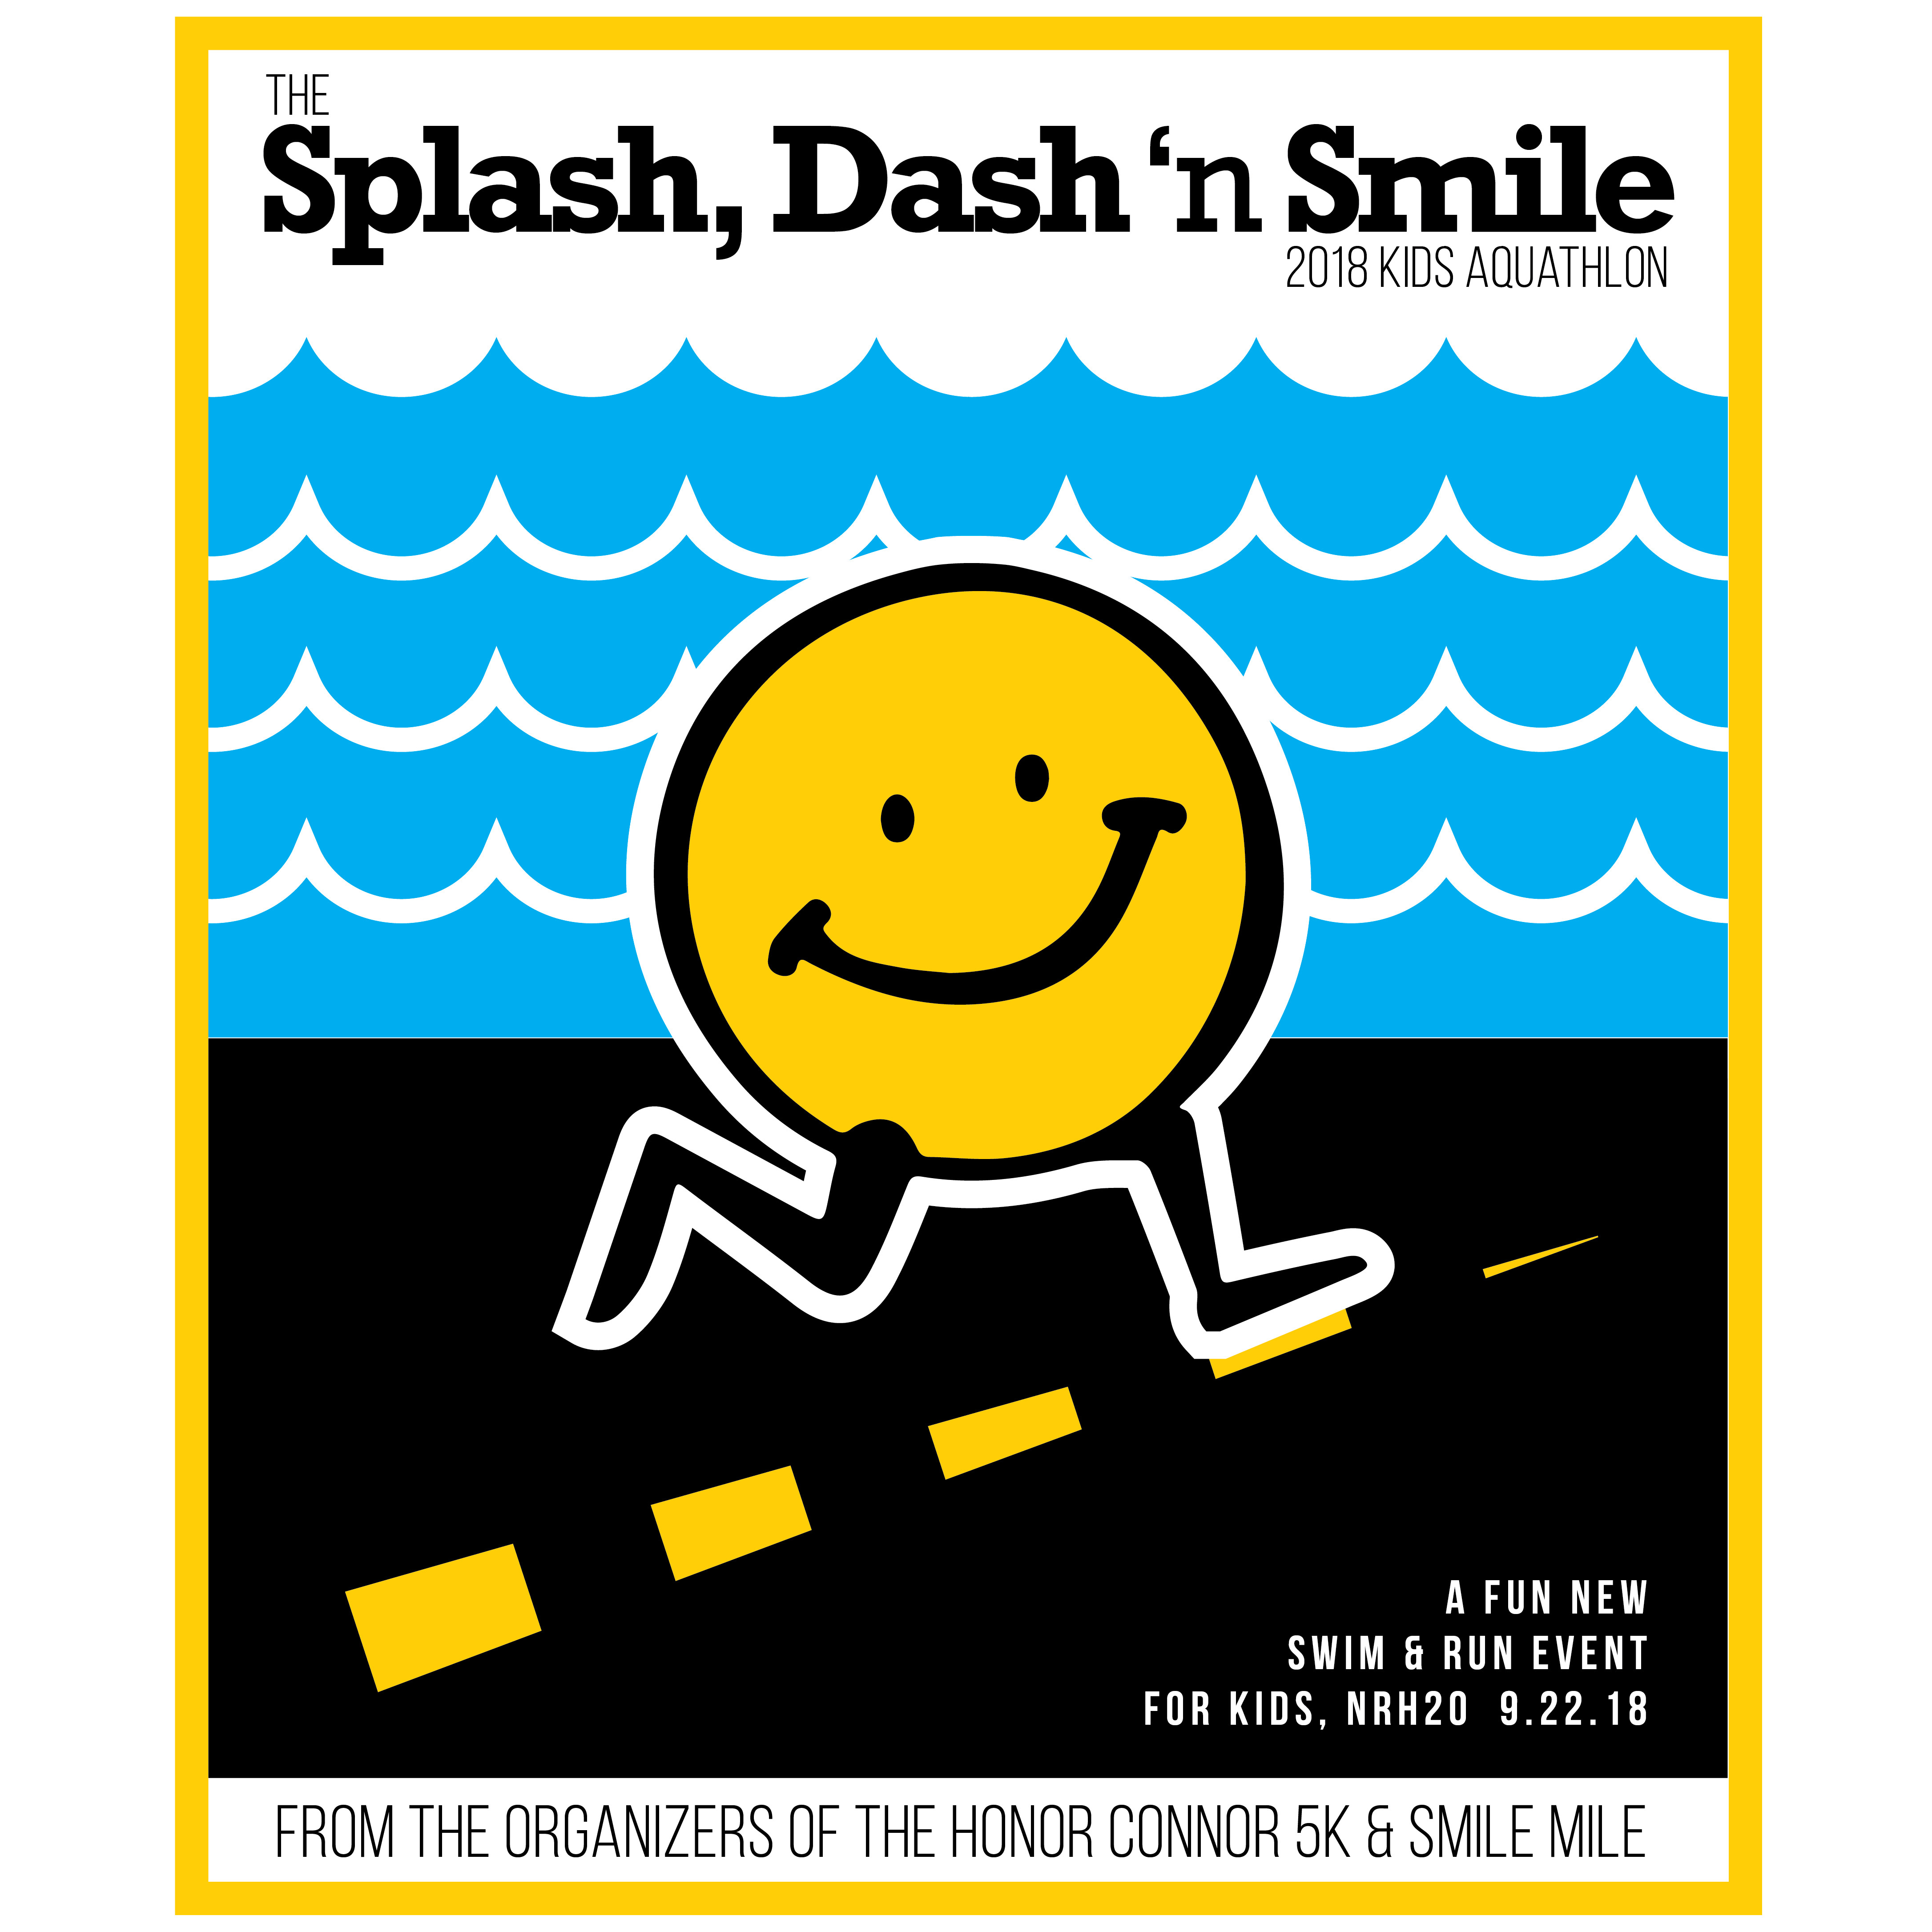 Splash, Dash 'n Smile, benefiting the LV Project